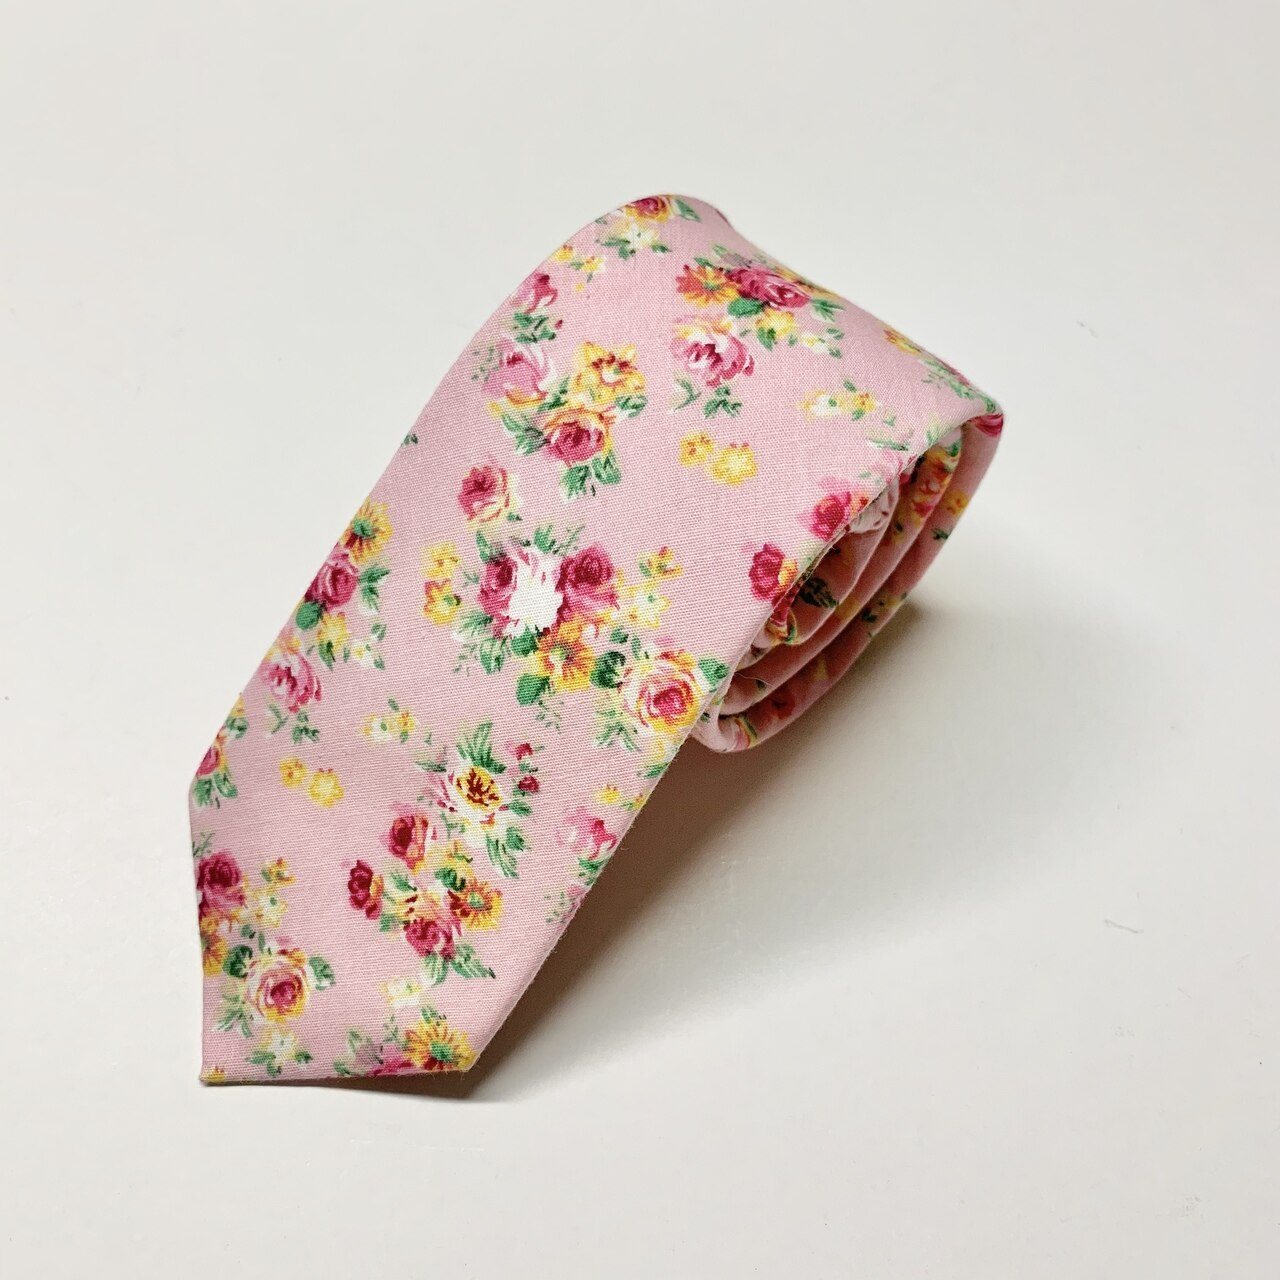 Bloom Slim Tie - Pink